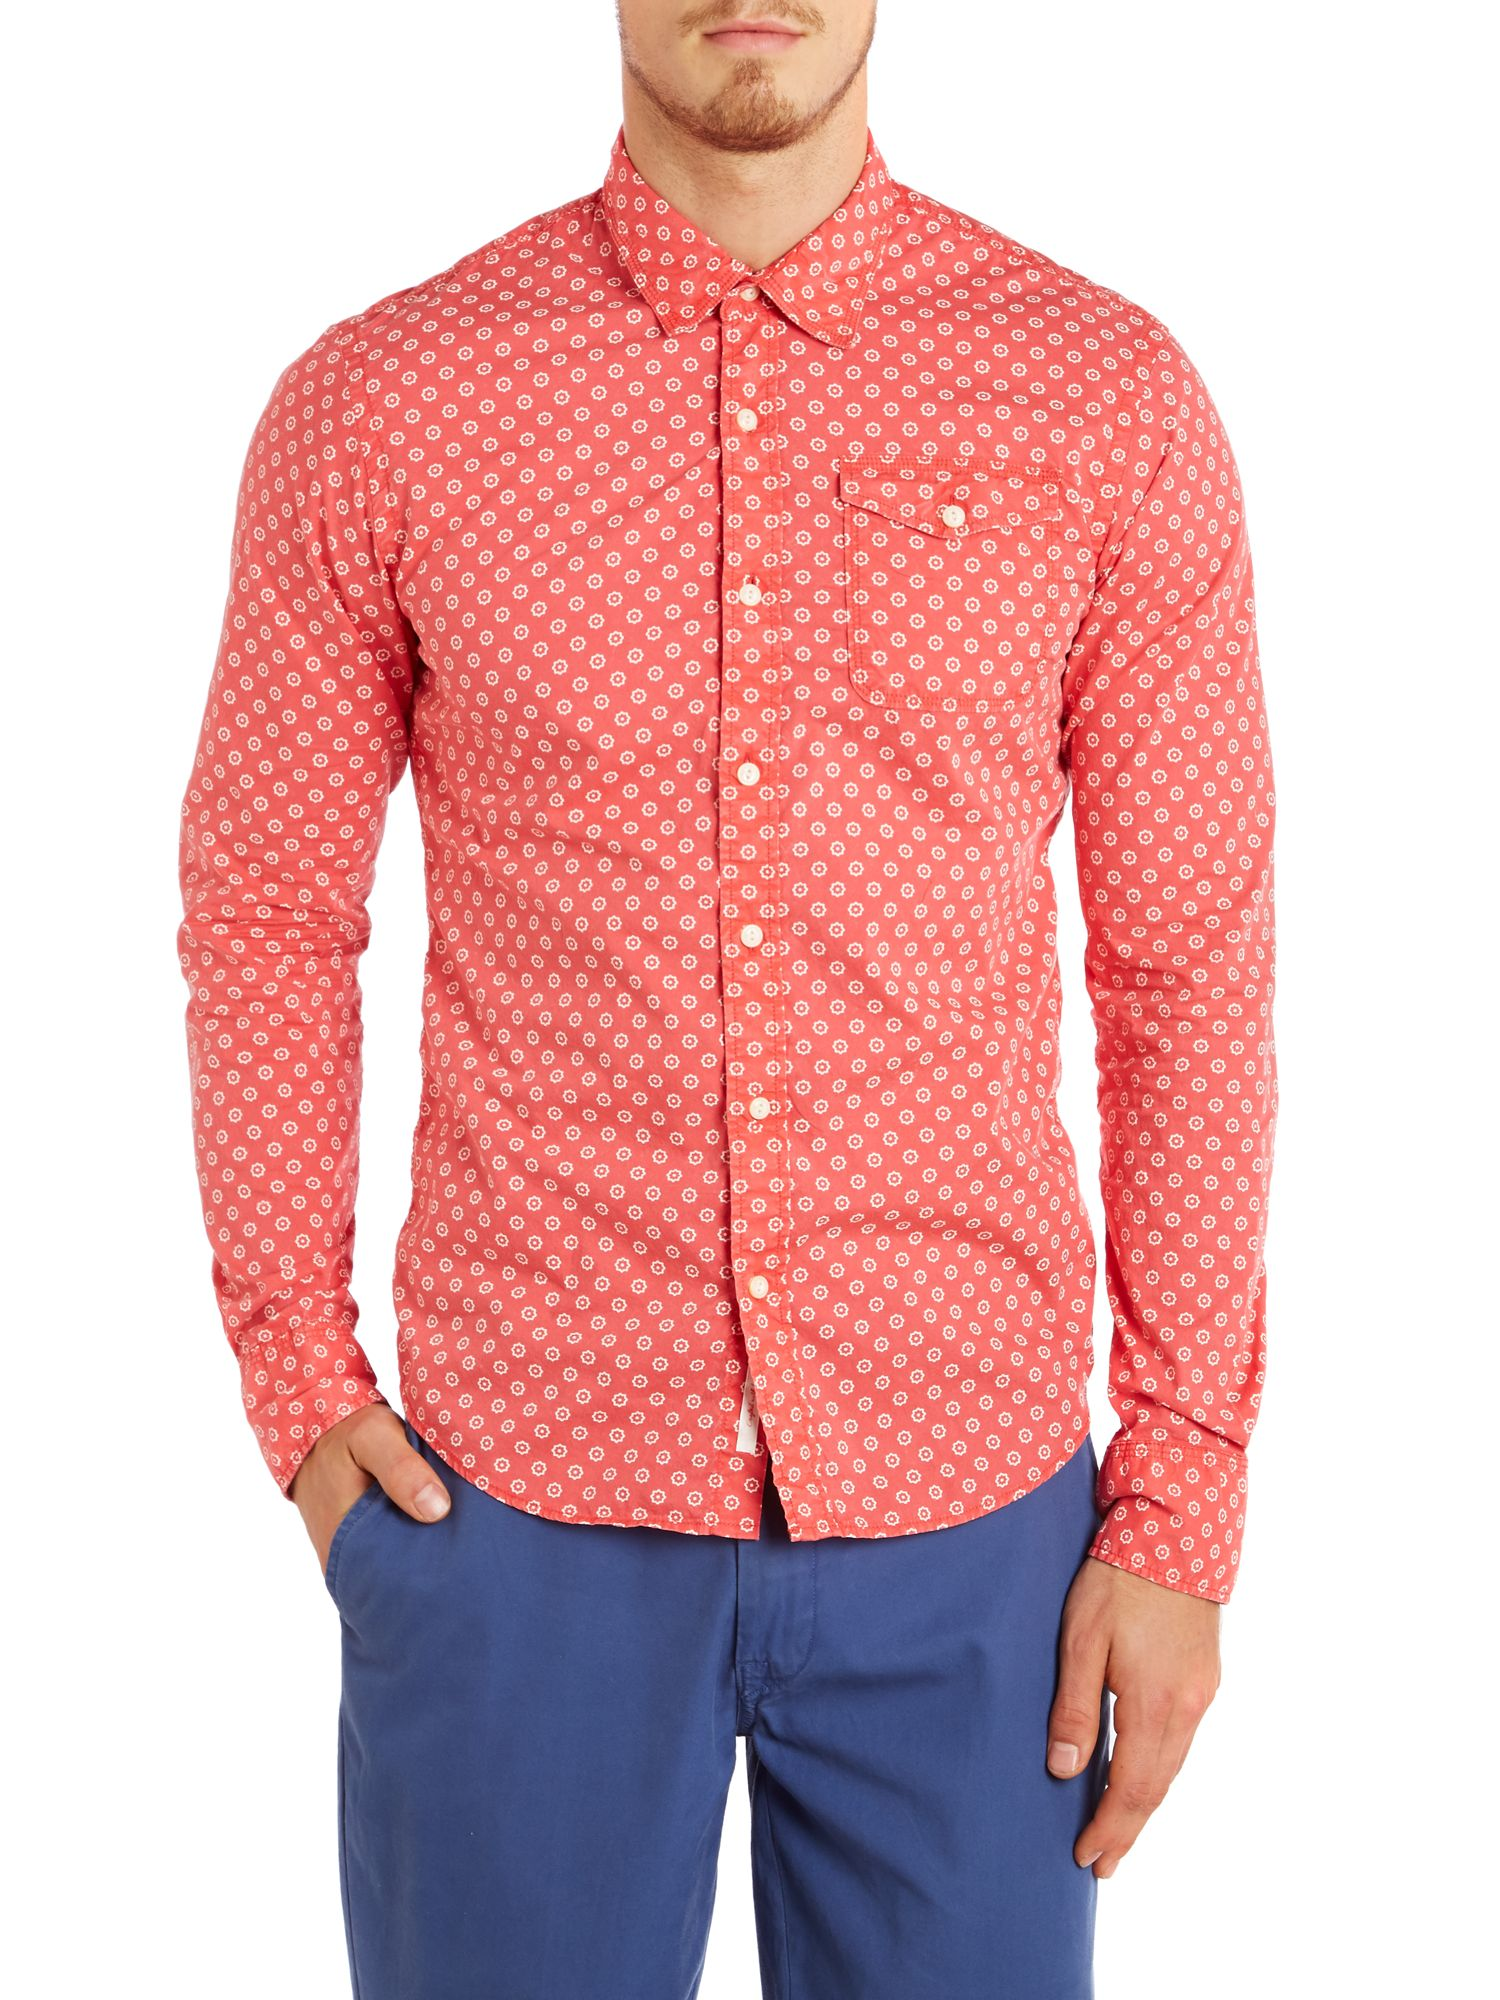 Washed all-over batik printed shirt